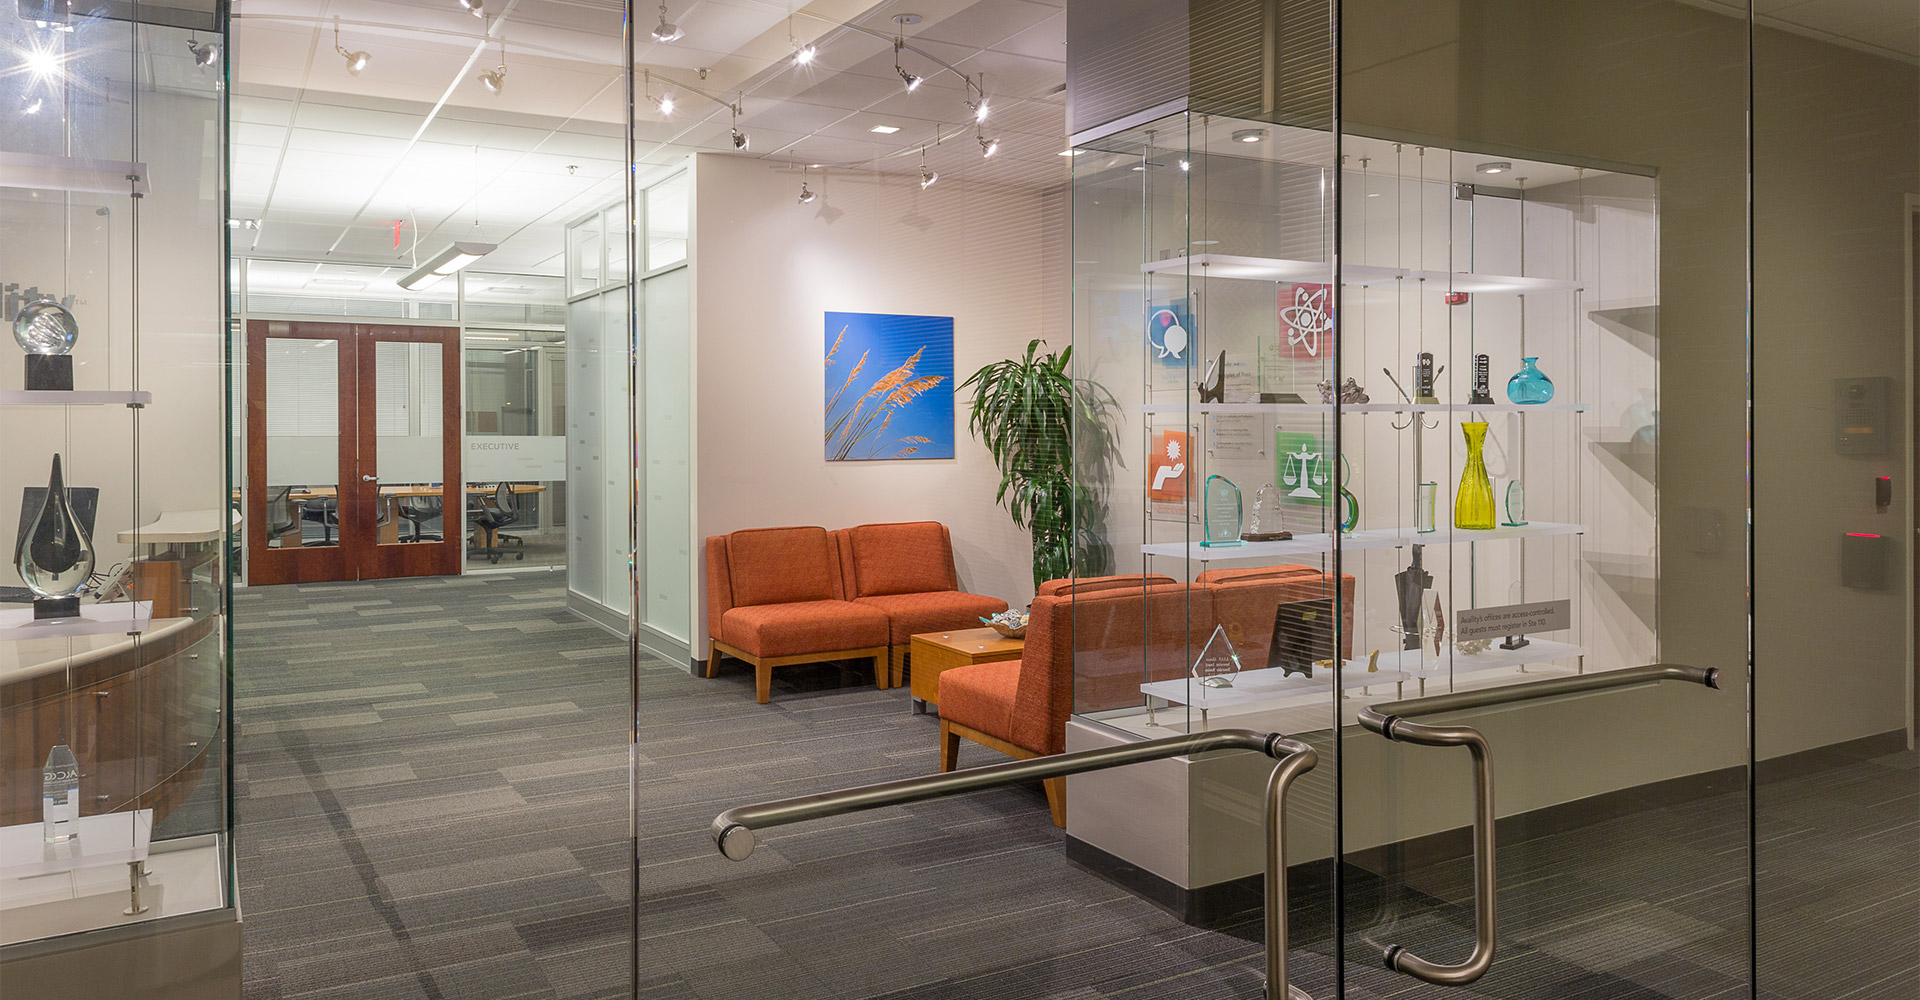 Interior of Availity building.